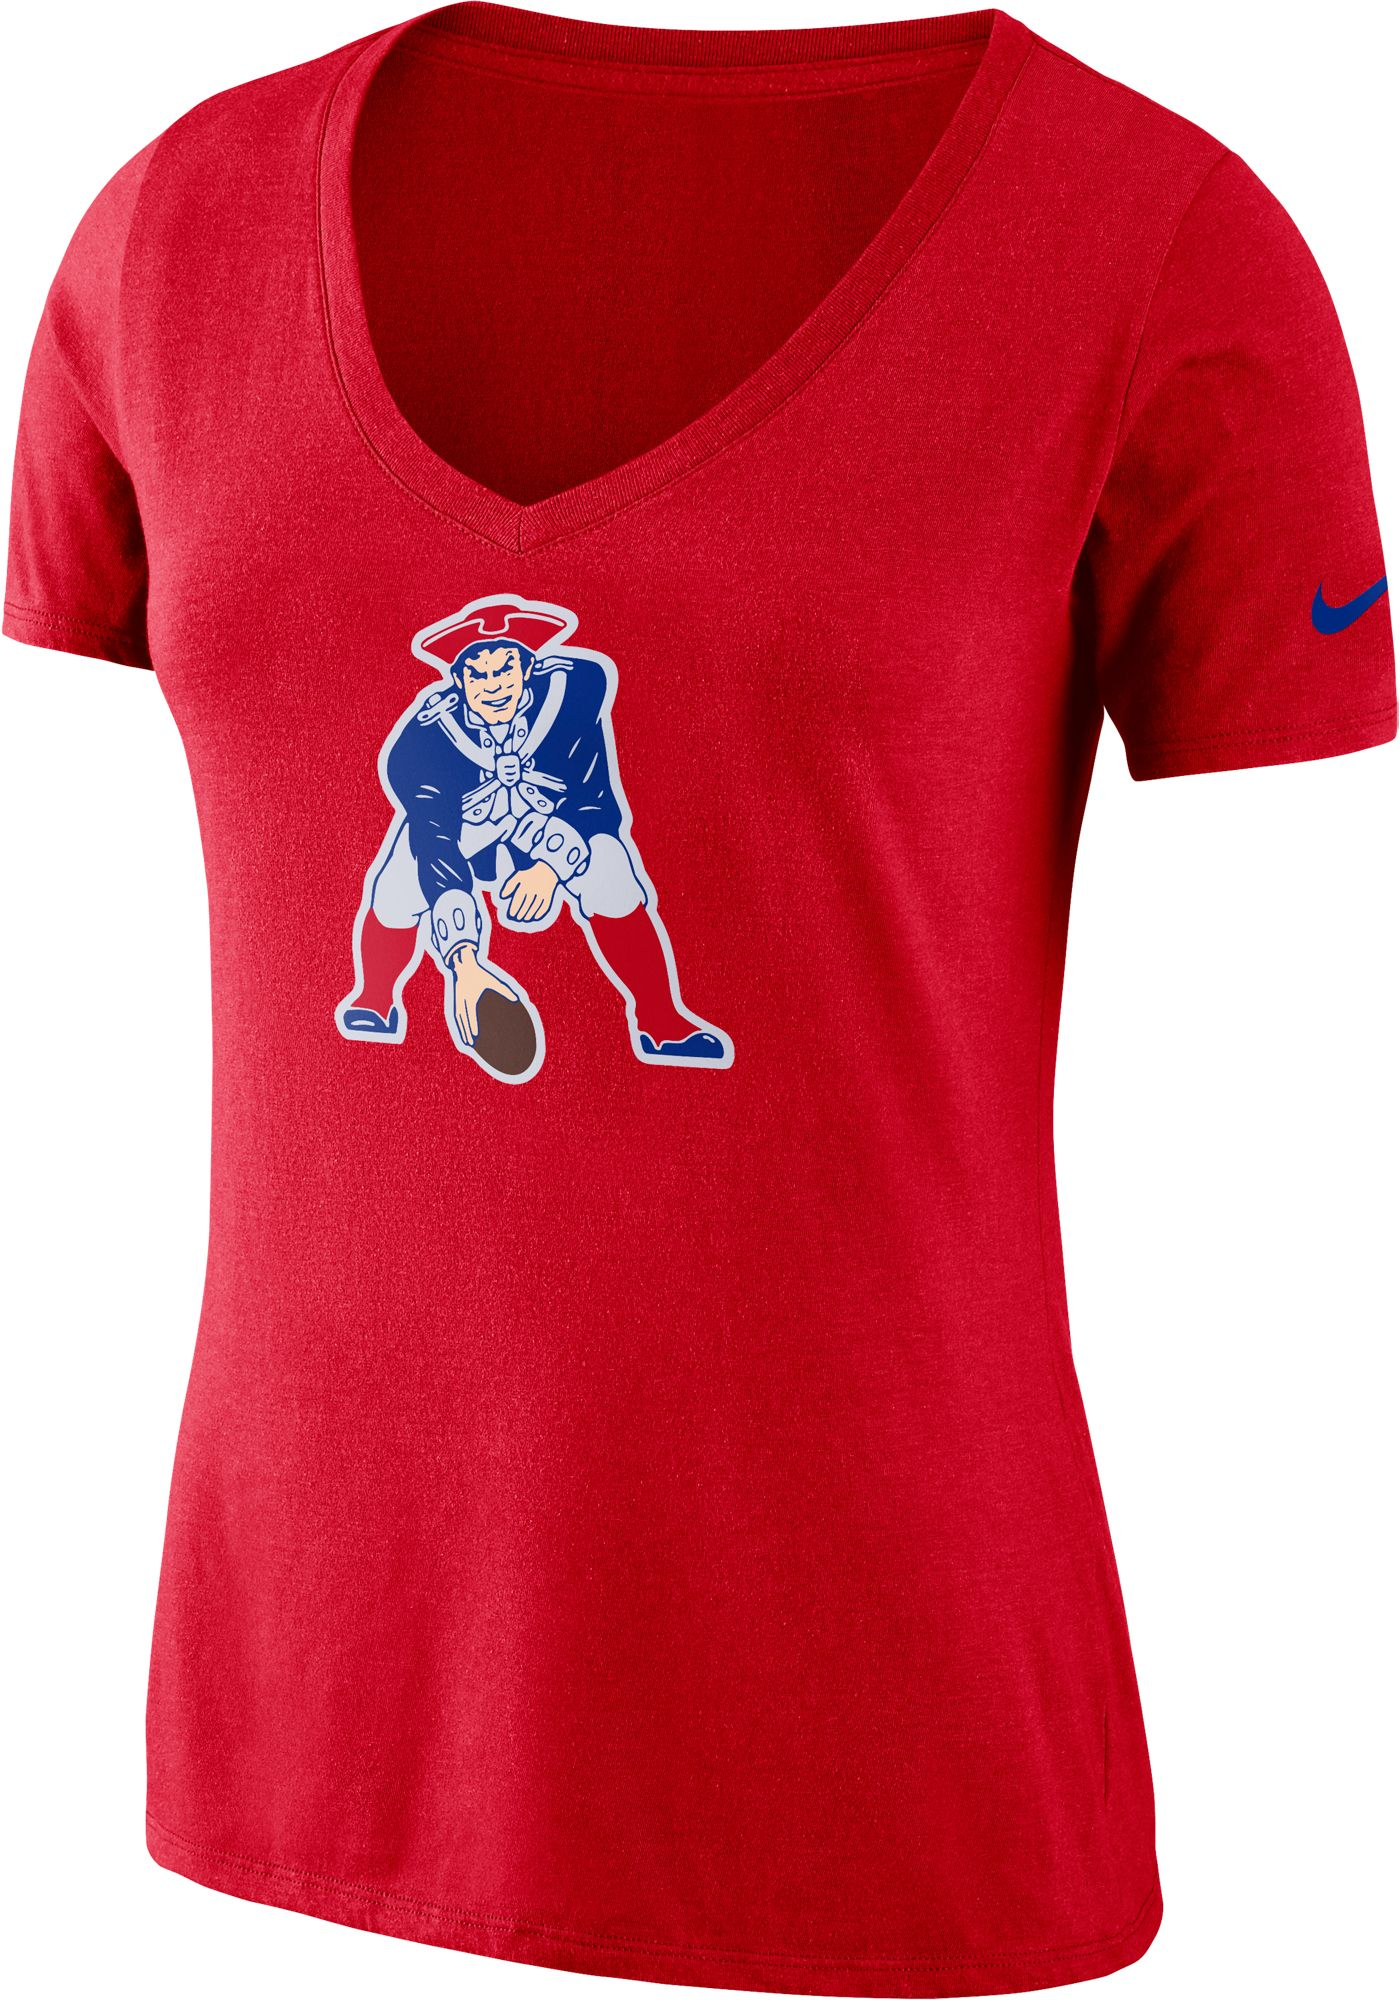 Nike Women's New England Patriots Tri-Blend Historic Red T-Shirt